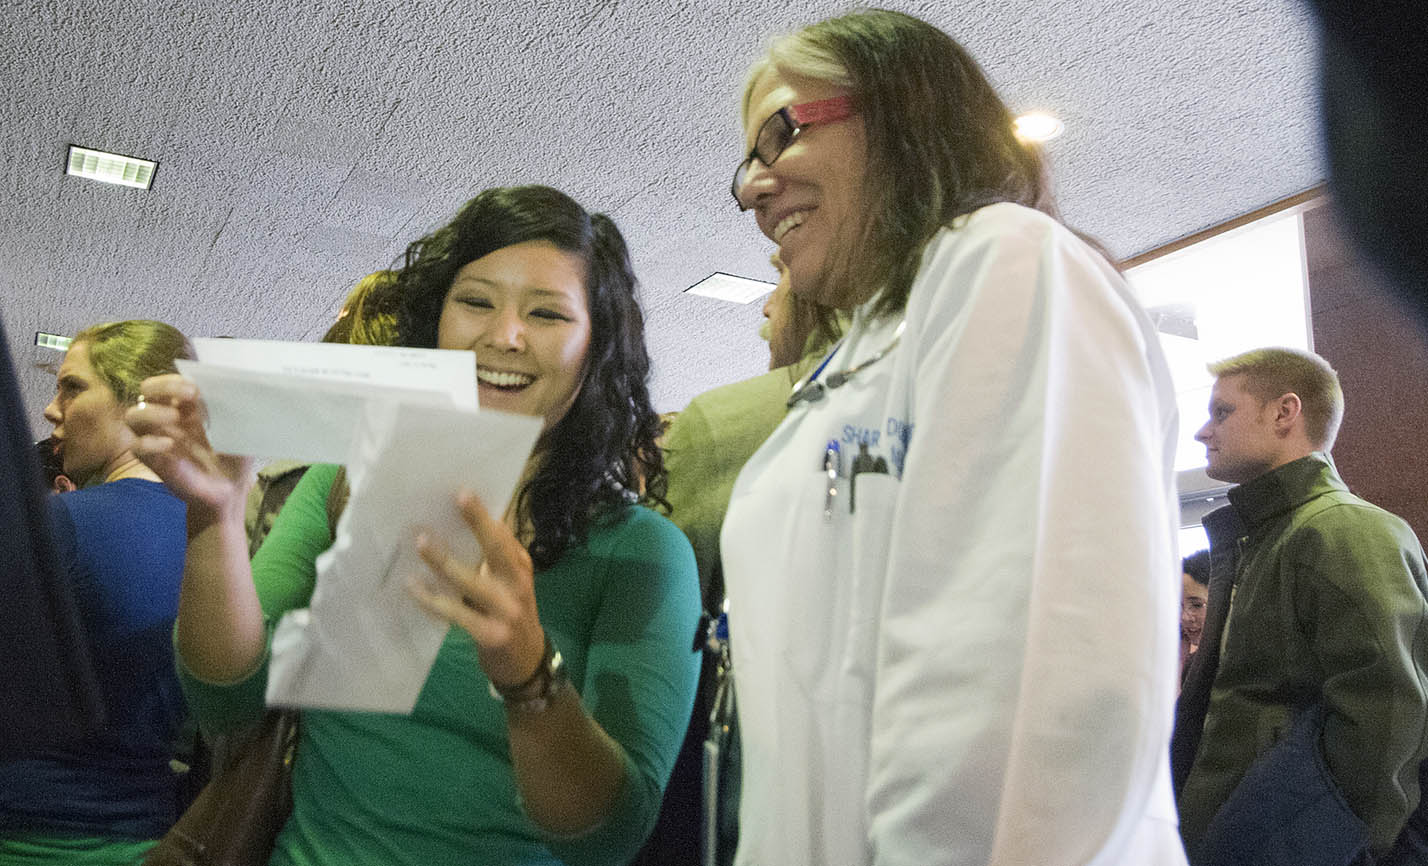 Emily Glynn shows her match results to one of her mentors, Dr. Sharon Dobie, professor of family medicine.